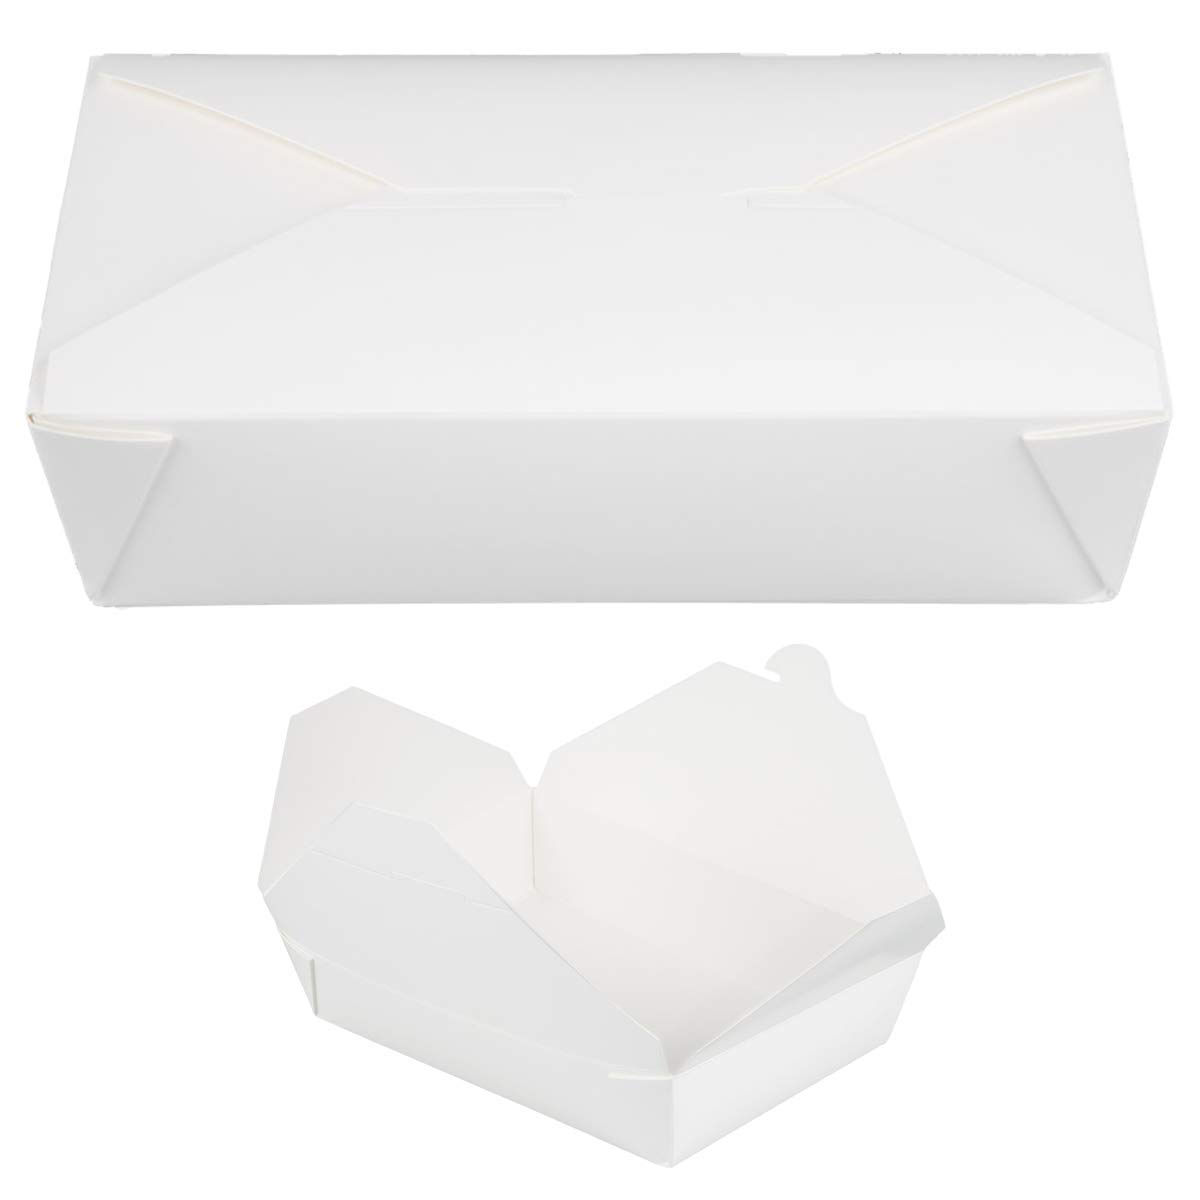 MM Foodservice Disposable Paper Take Out Boxes, Microwavable Take Out Containers, Leak and Grease Resistant Carryout, Takeout Food Box, 7 3/4 x 5 1/2 x 2 Inch, 49-Ounce Capacity (White, 100 Pack)